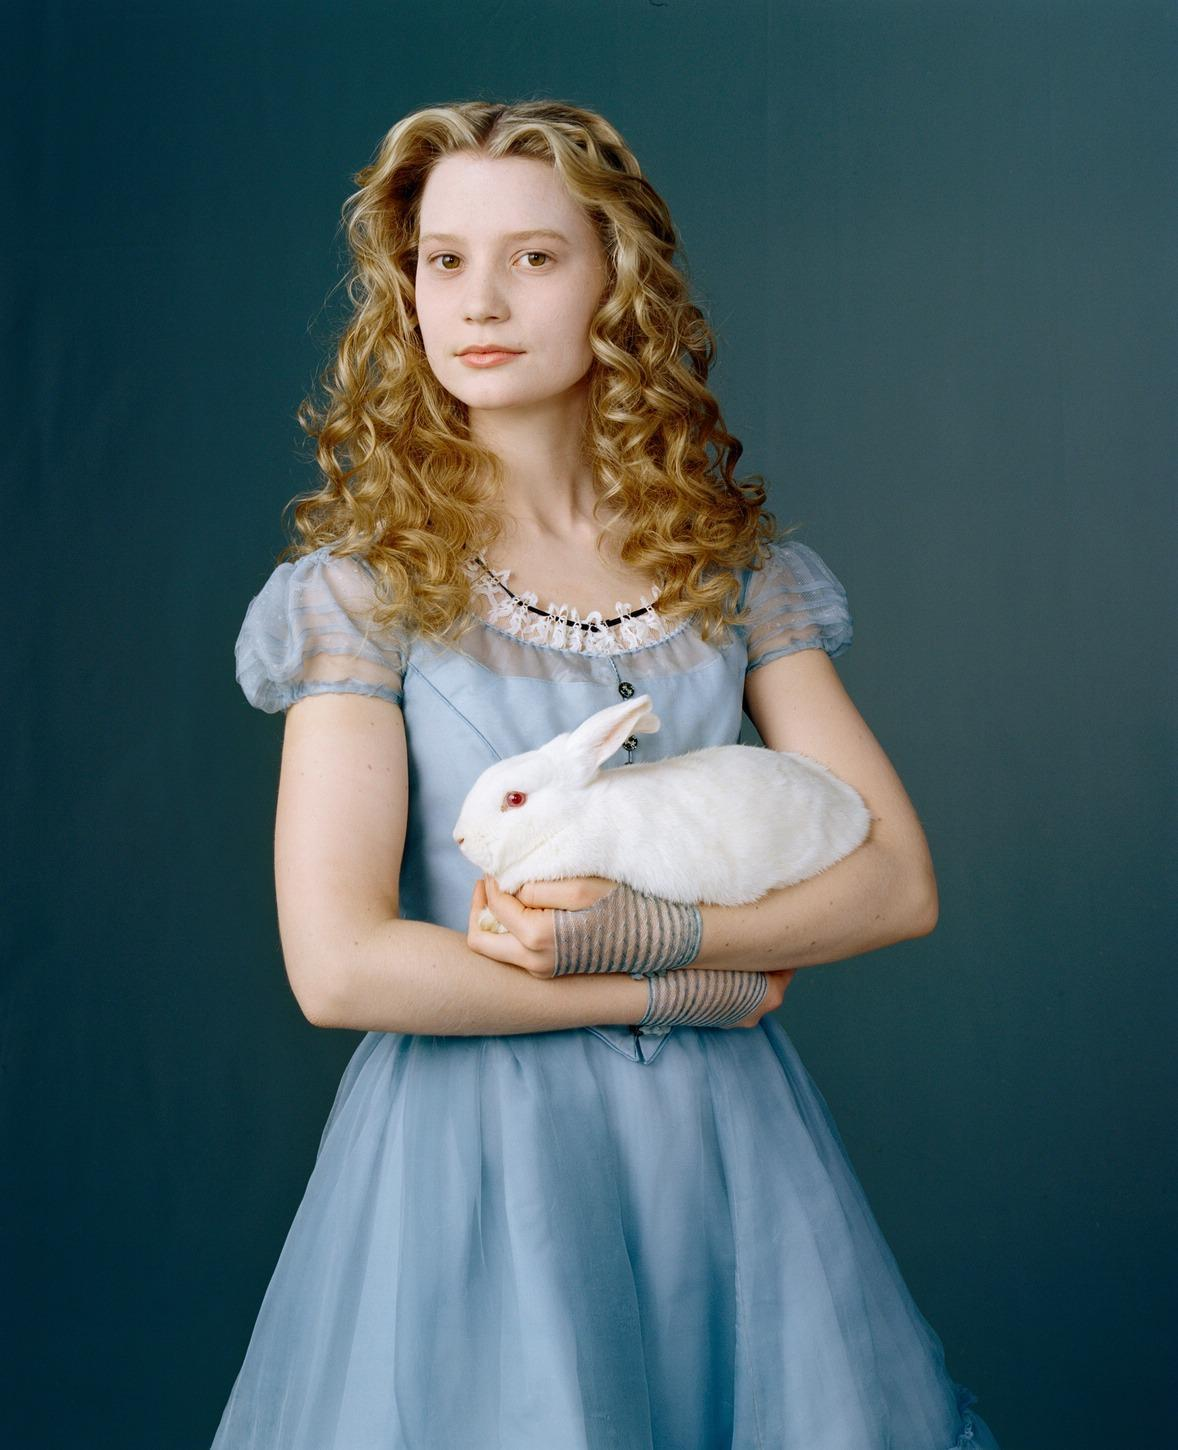 http://www.theplace2.ru/archive/mia_wasikowska/img/New_Alice_in_Wonderl-1.jpg